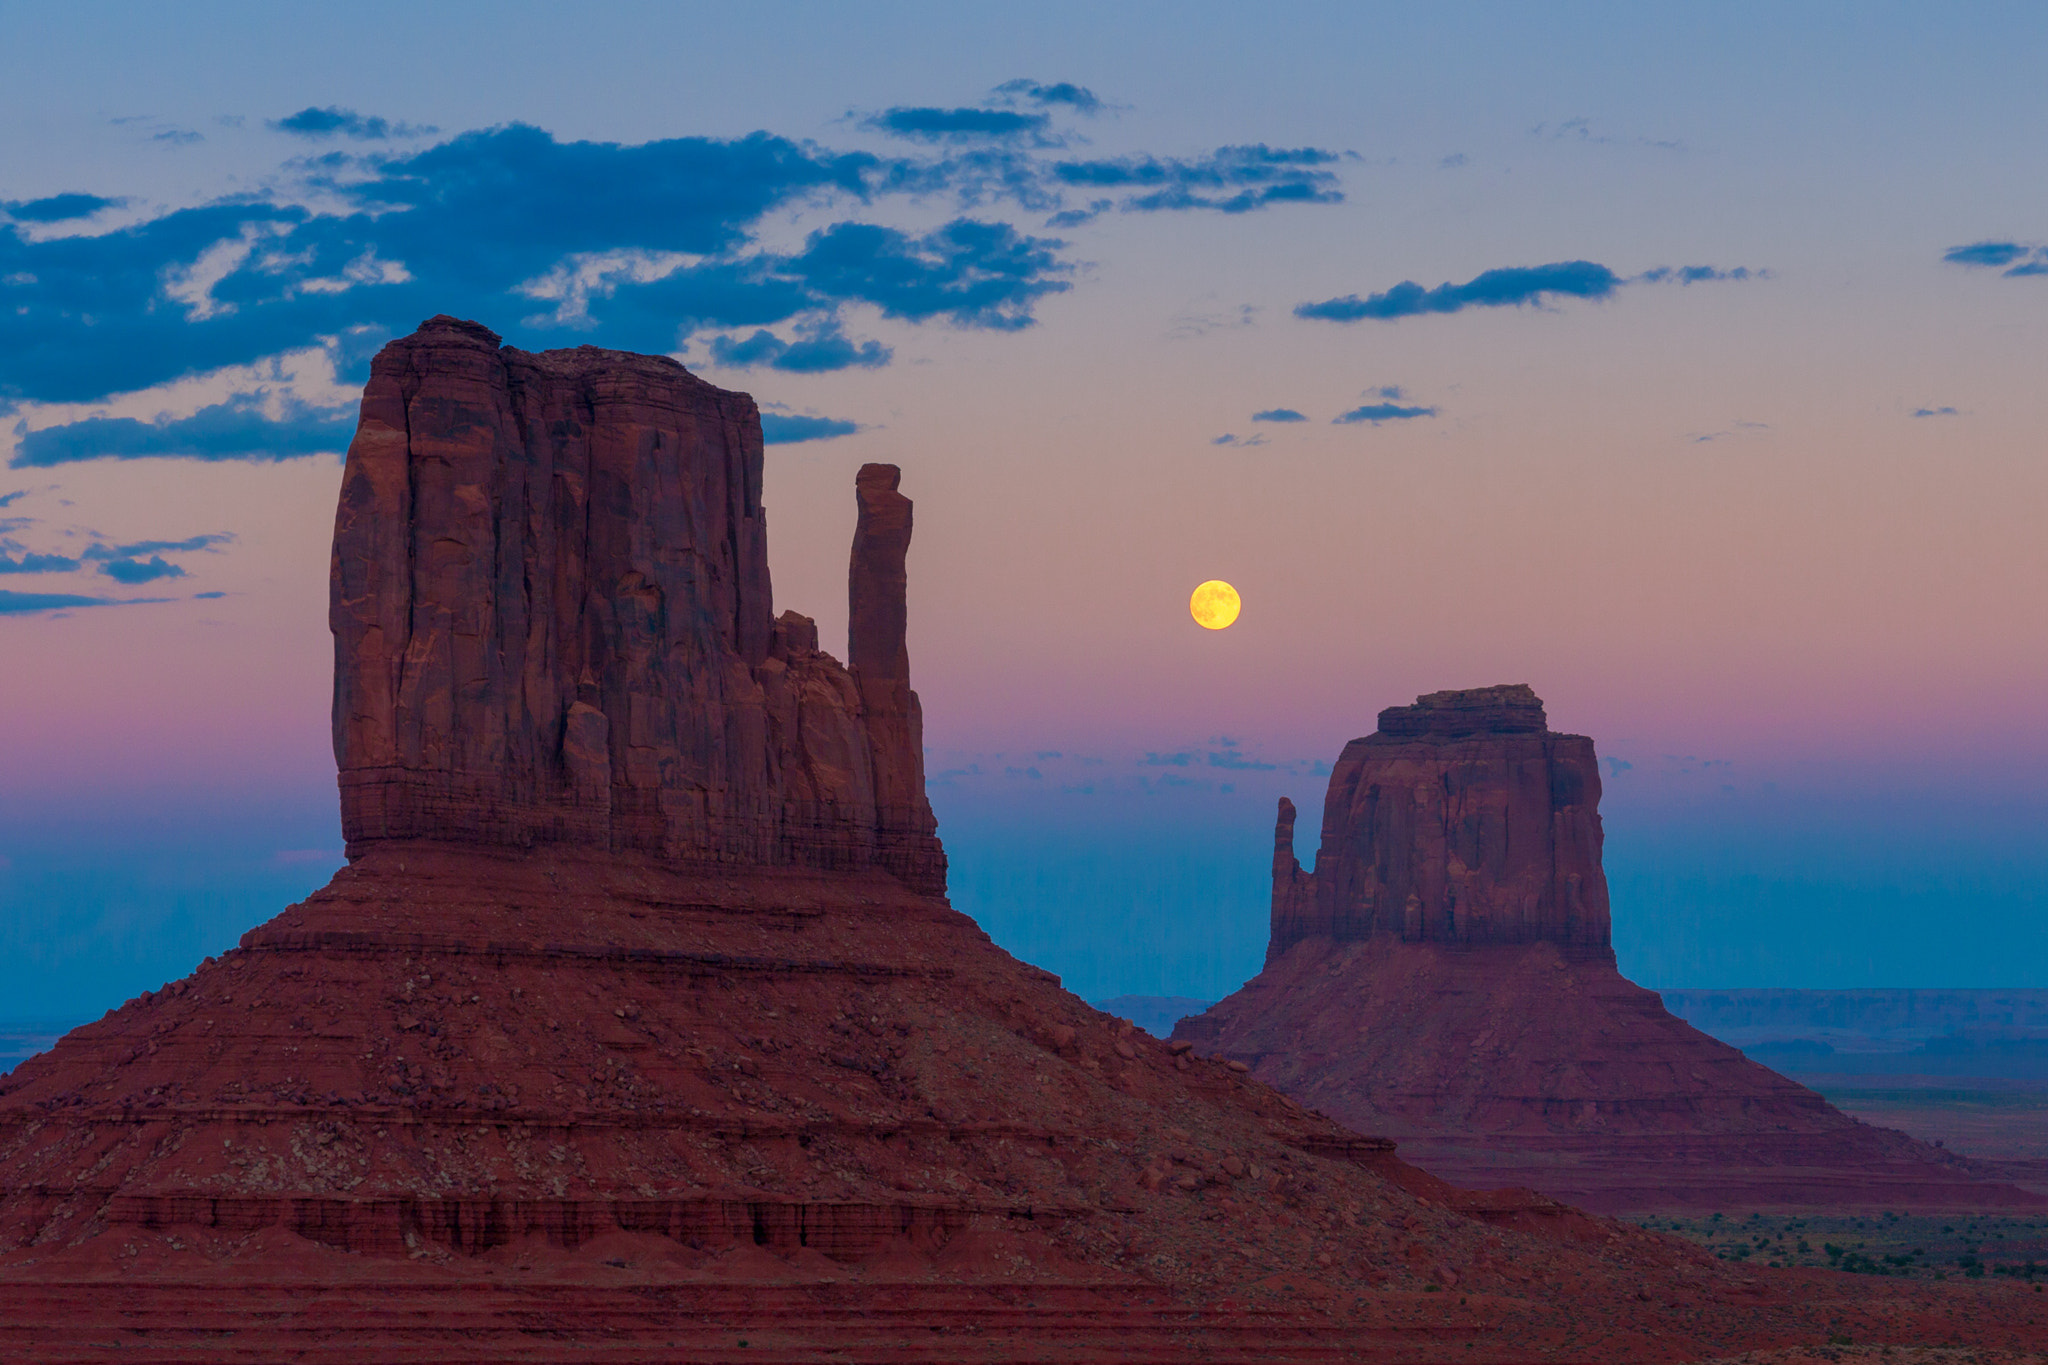 Photograph Monument Valley by Keith Skelton on 500px